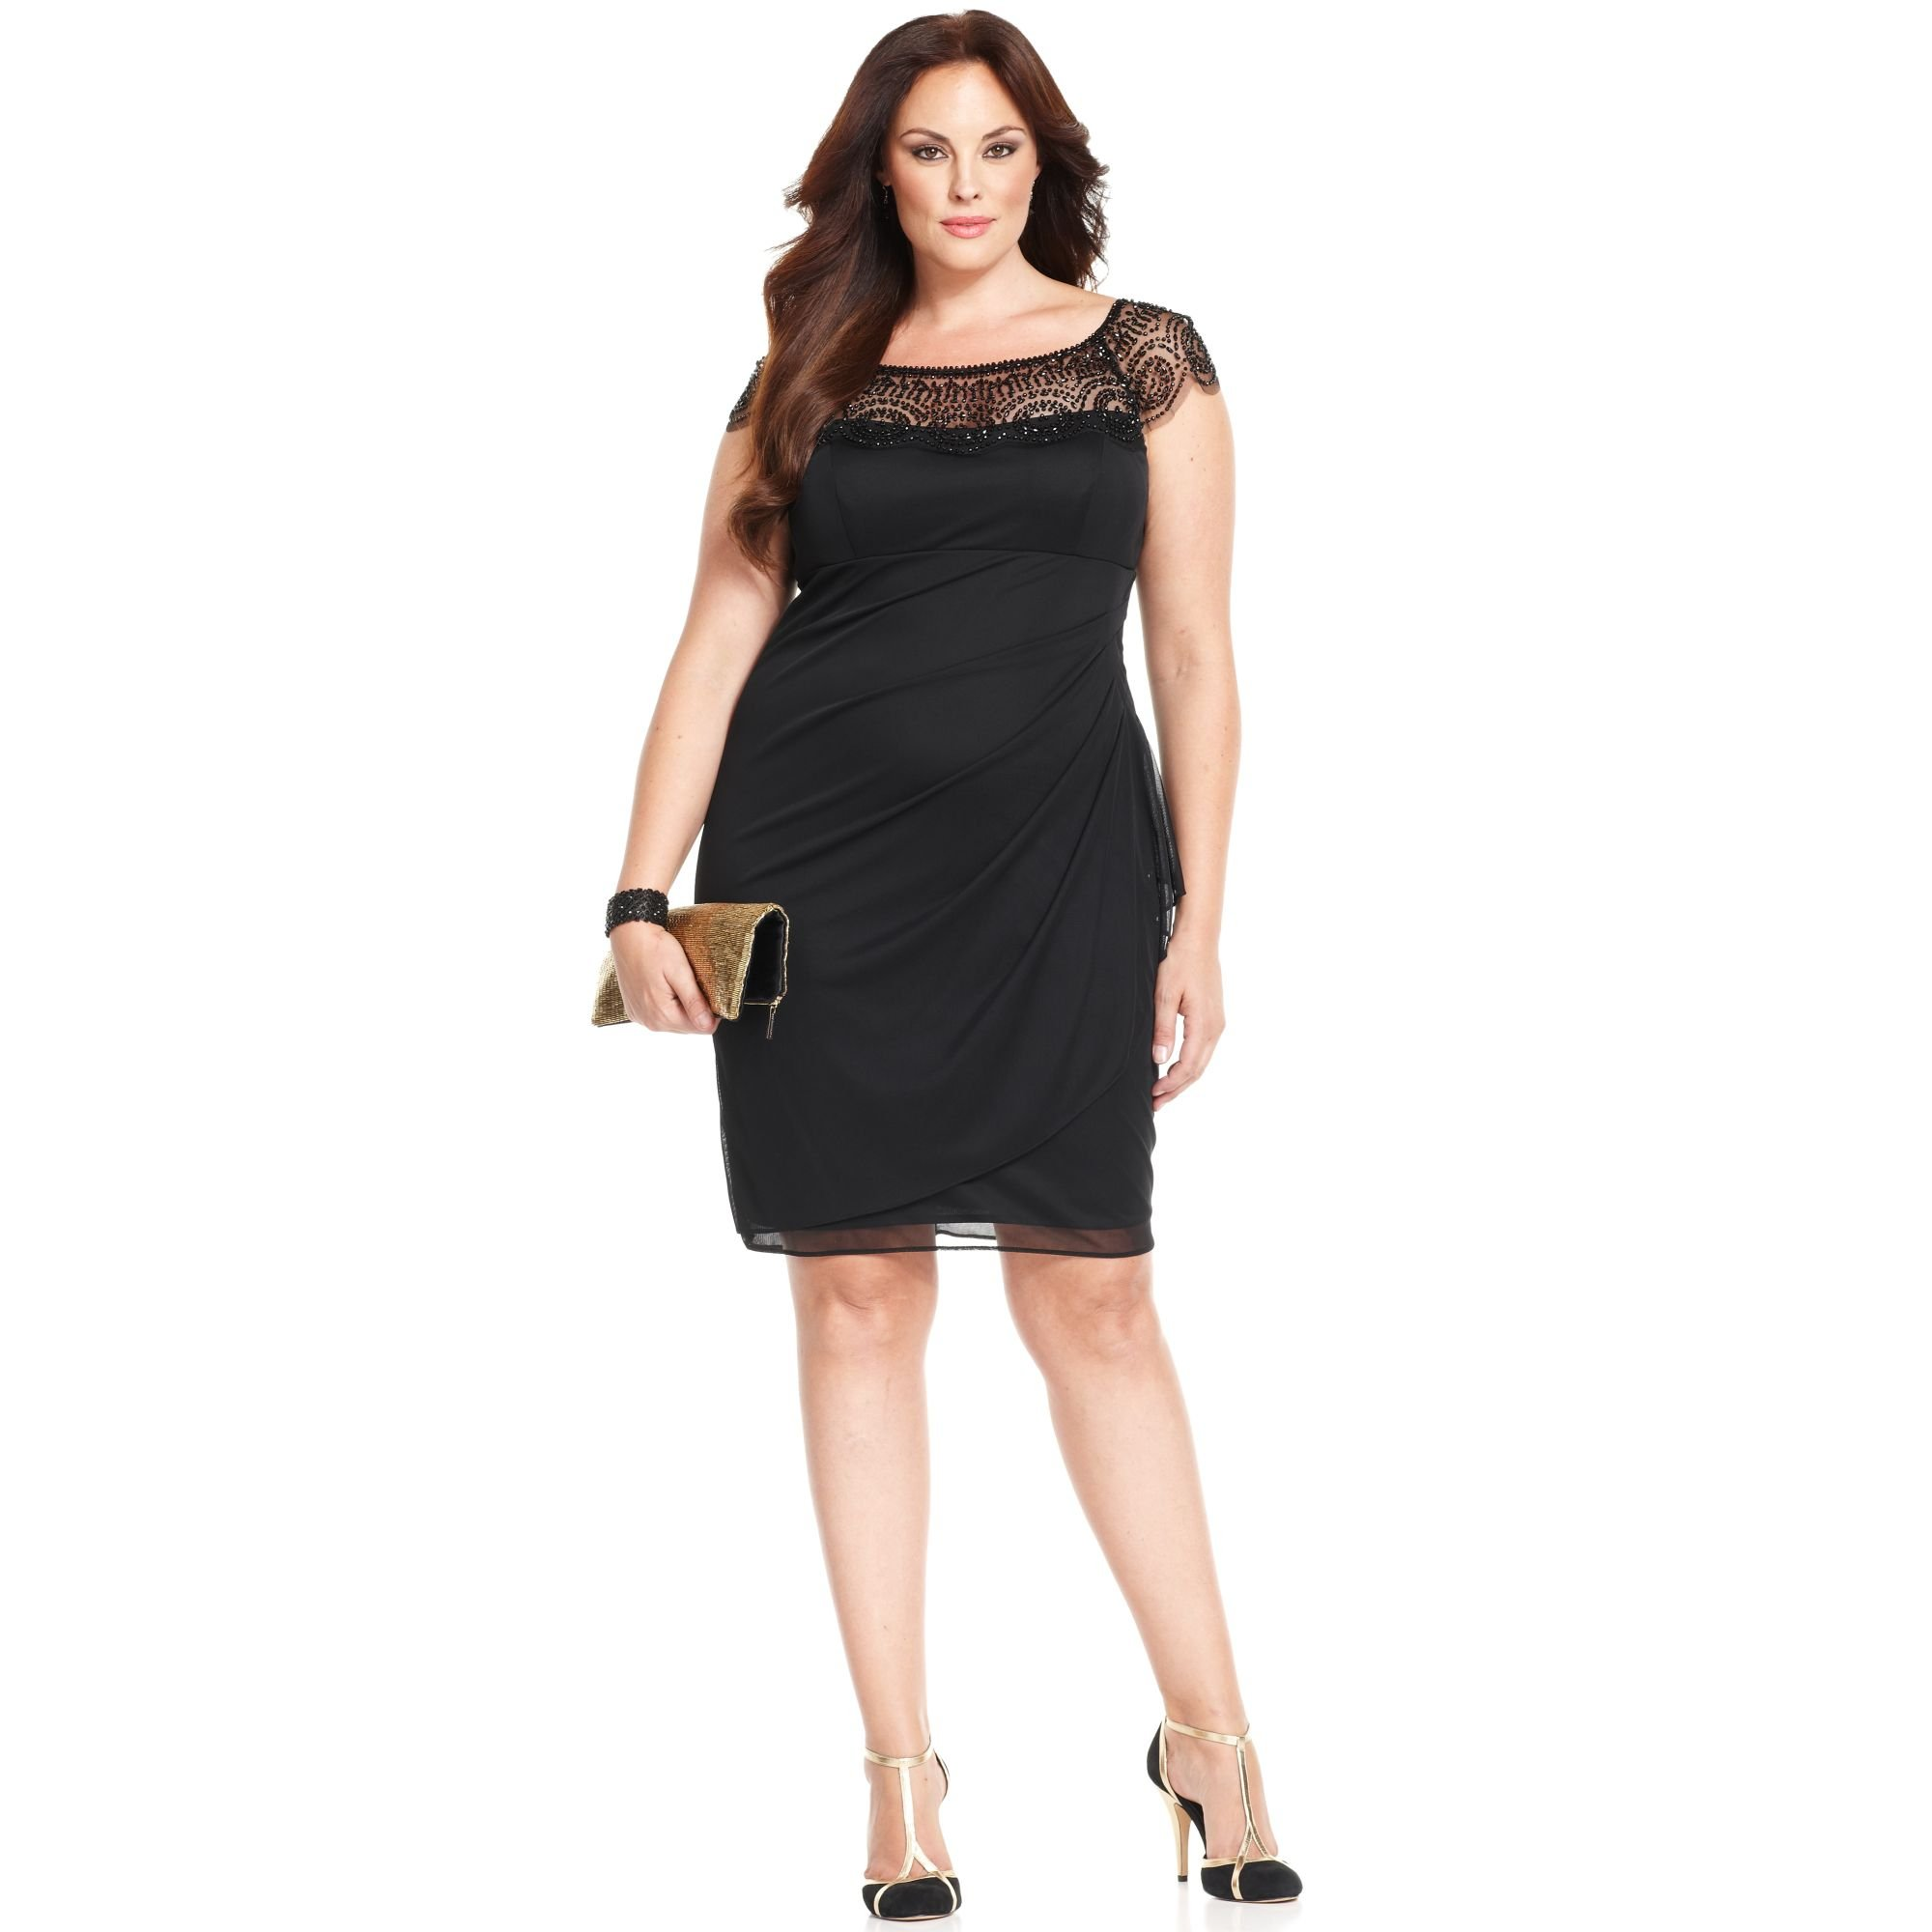 Lyst - Xscape Xscape Plus Size Dress Capsleeve Beaded in Black